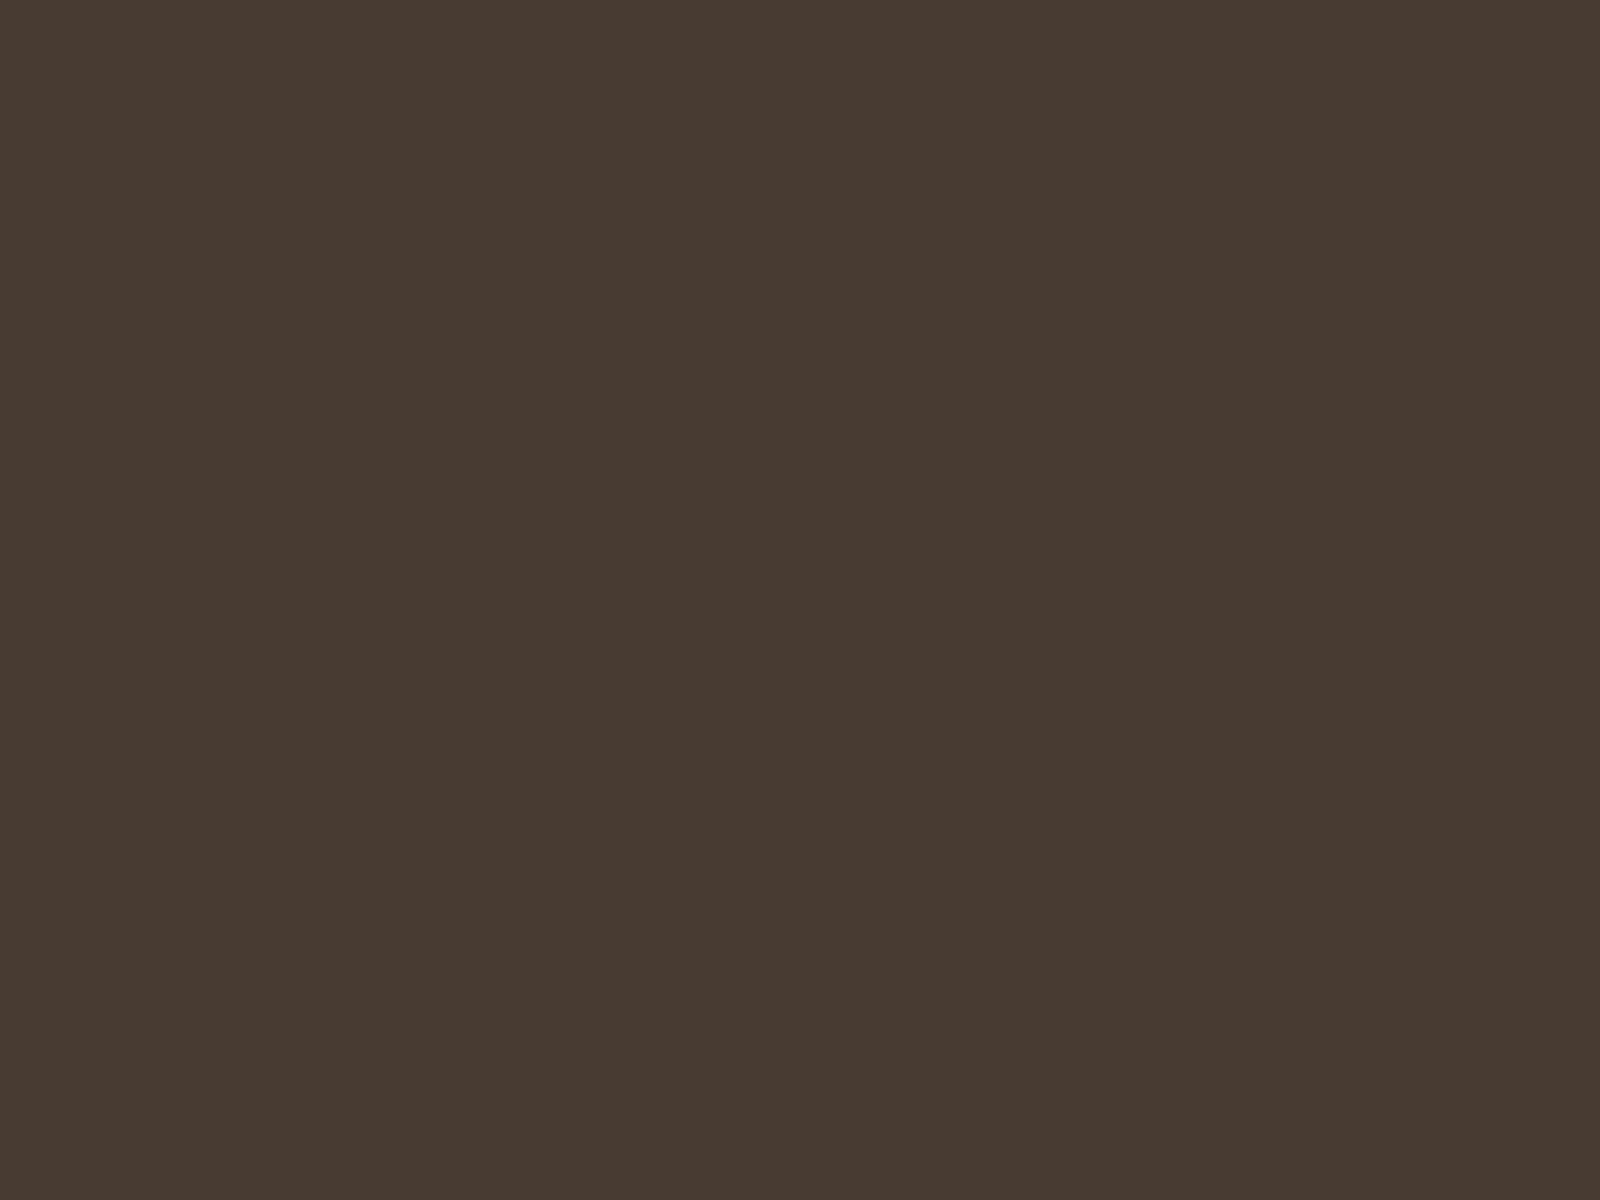 1600x1200 Dark Taupe Solid Color Background